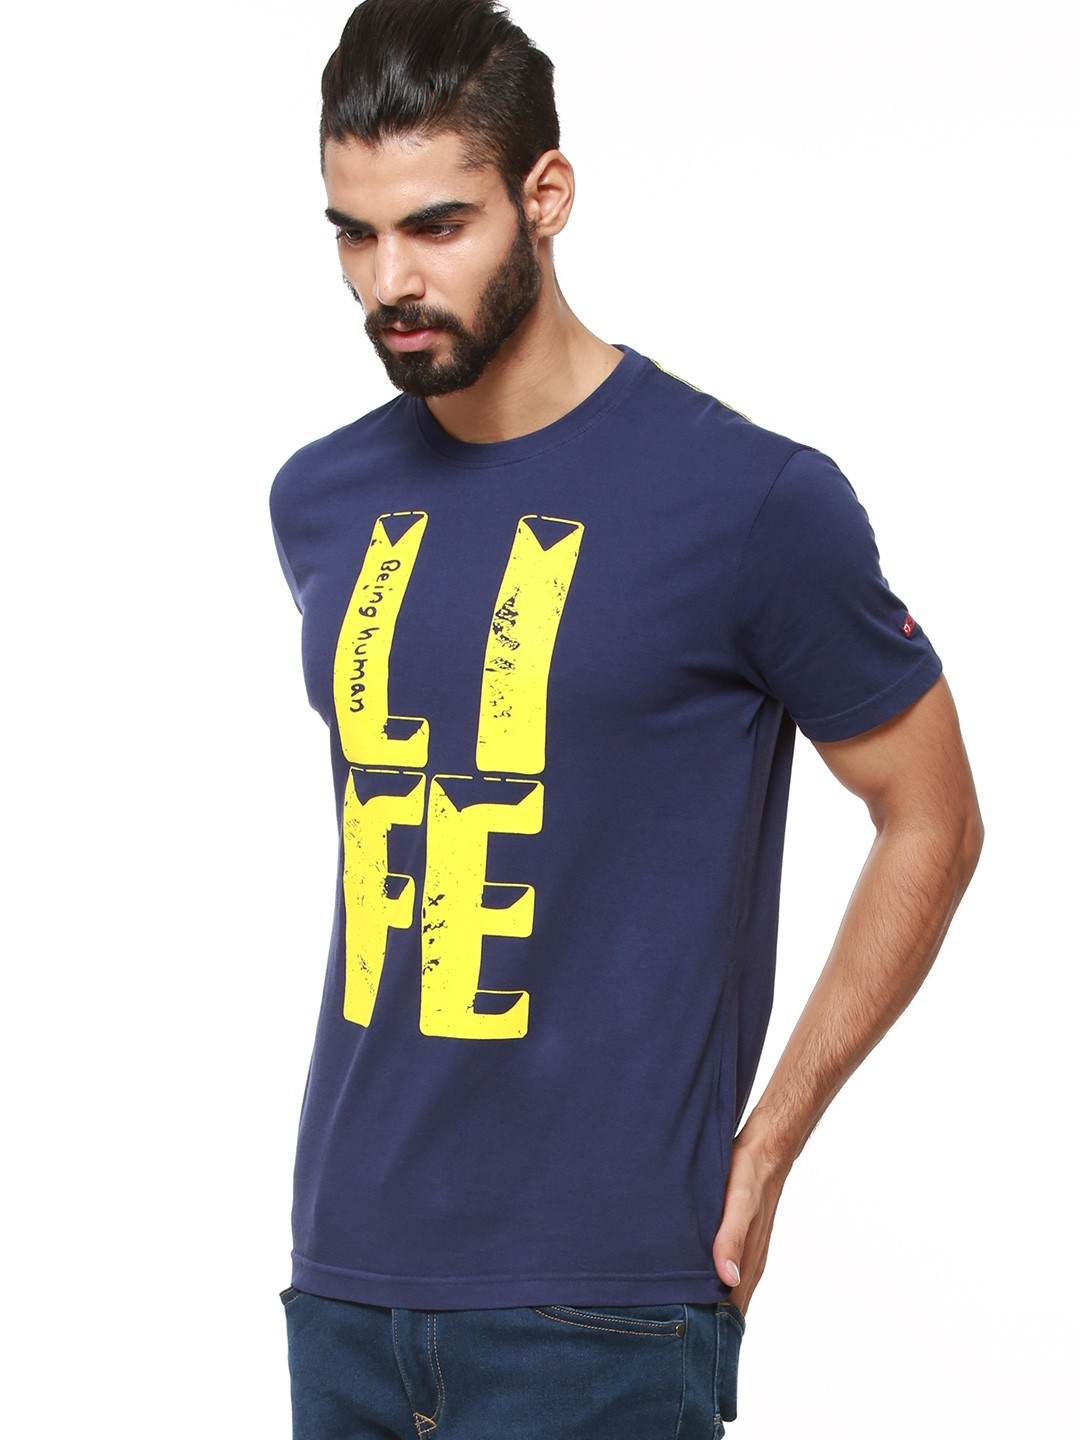 Buy being human t shirt with life print for men men 39 s for Being human t shirts buy online india